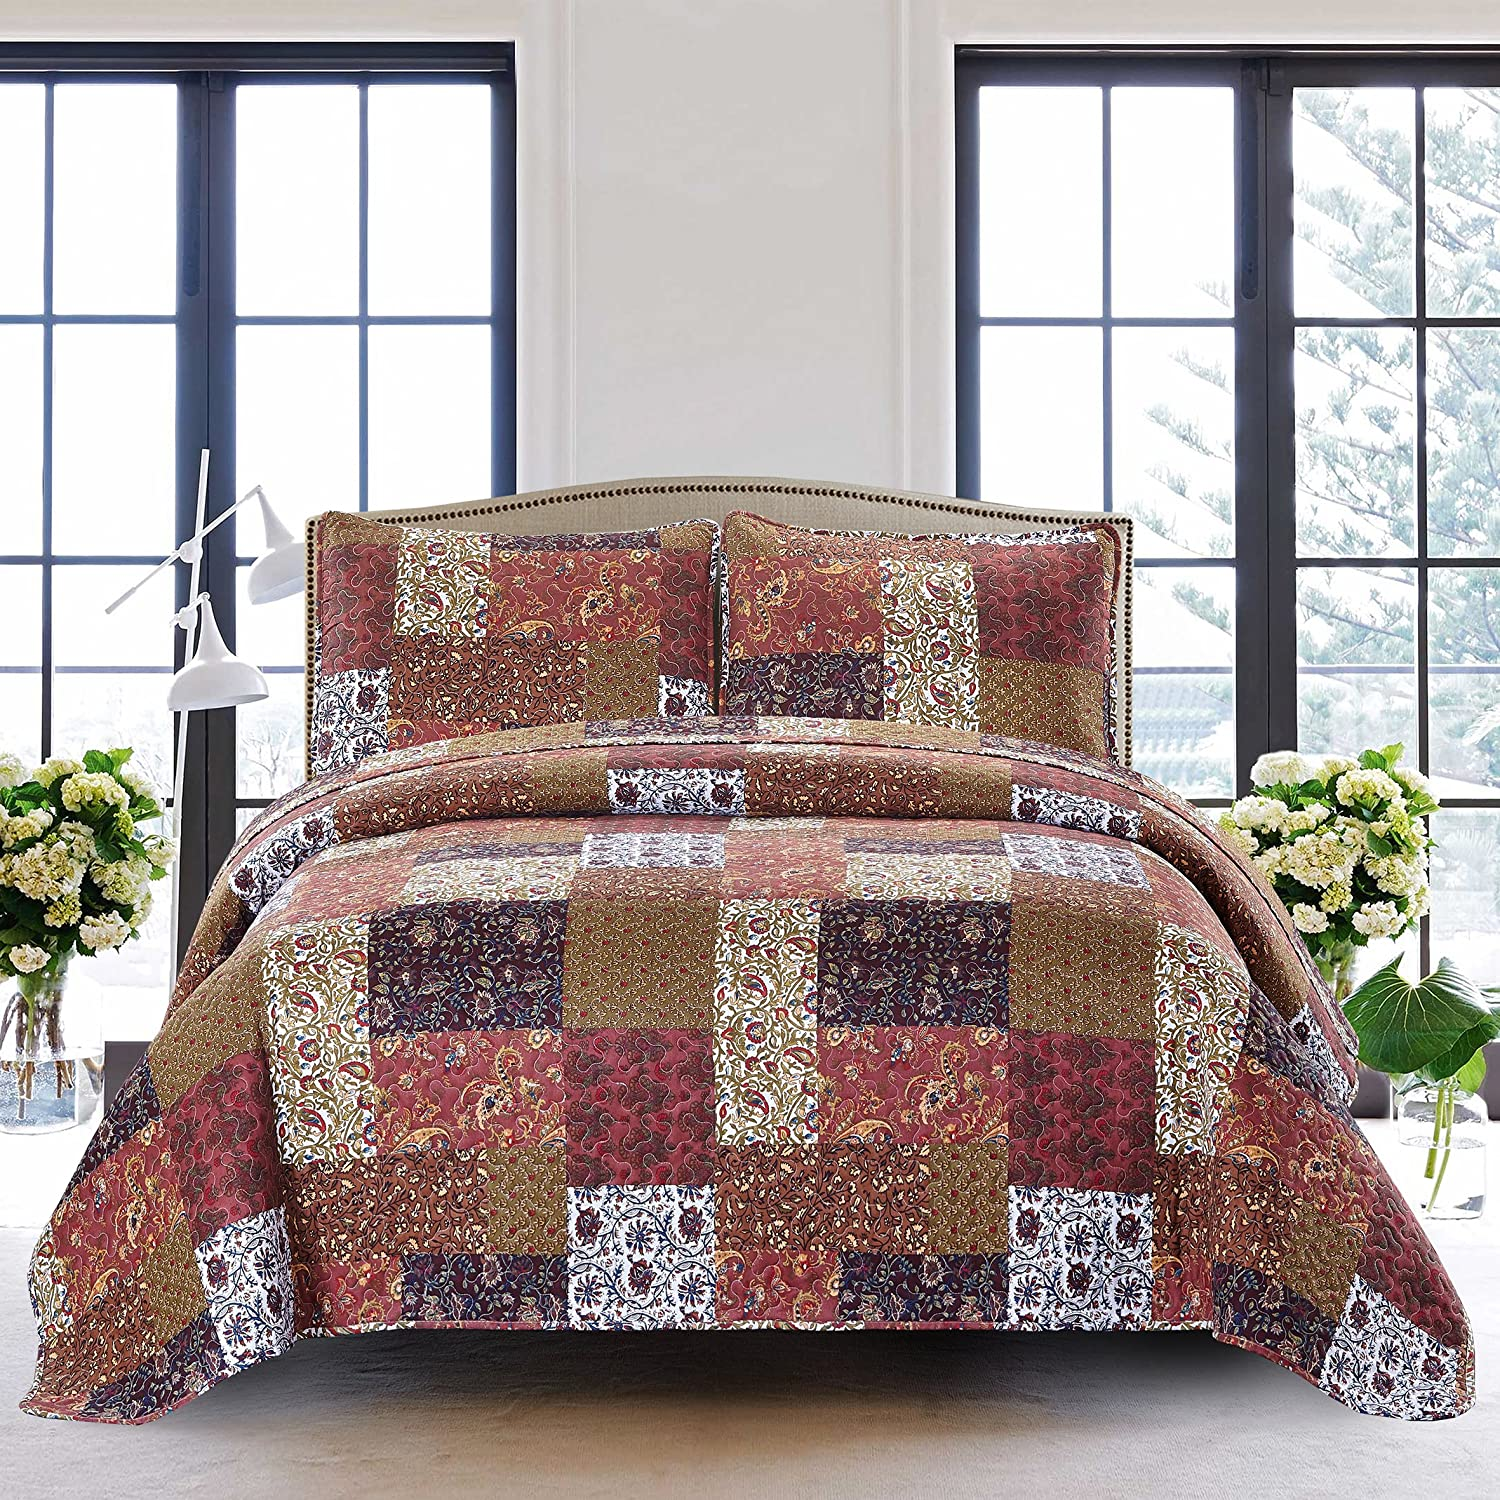 SLPR Red Riches 3-Piece Lightweight Printed Quilt Set (Queen) | with 2 Shams Pre-Washed All-Season Machine Washable Bedspread Coverlet